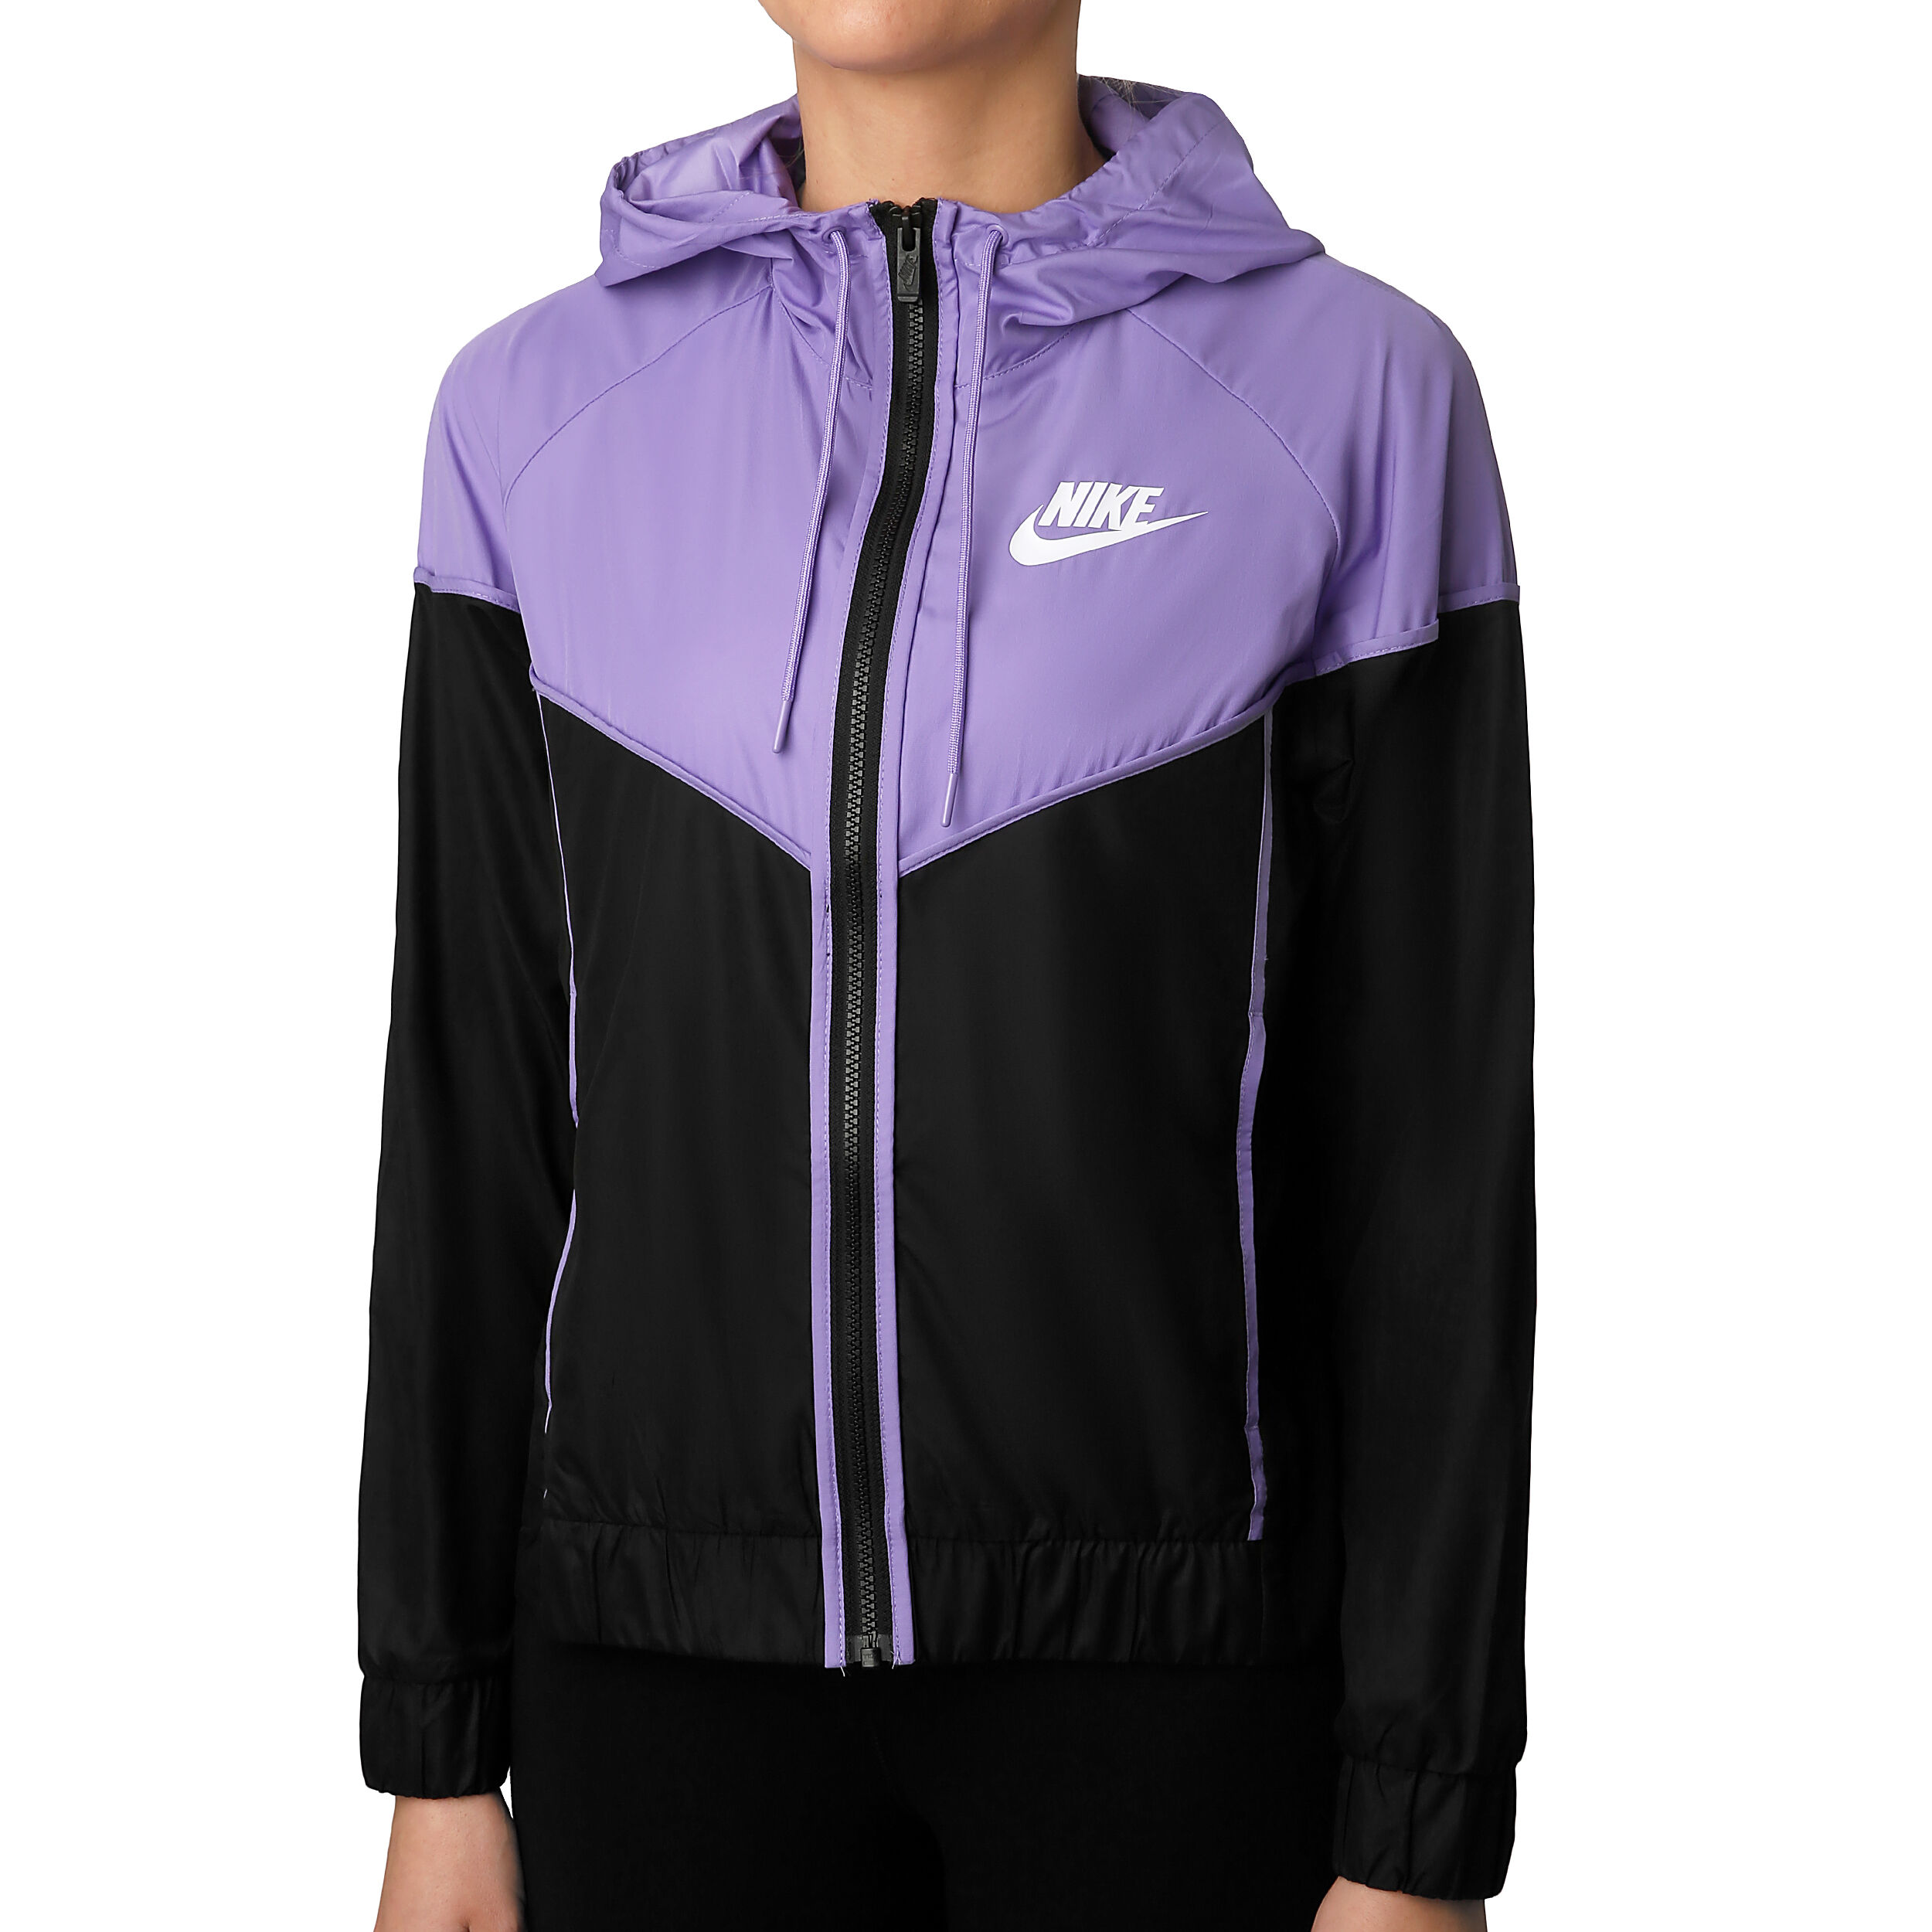 Nike Entrenamiento Mujeres Chaqueta De Sportswear Negro Windrunner 9WIHYED2